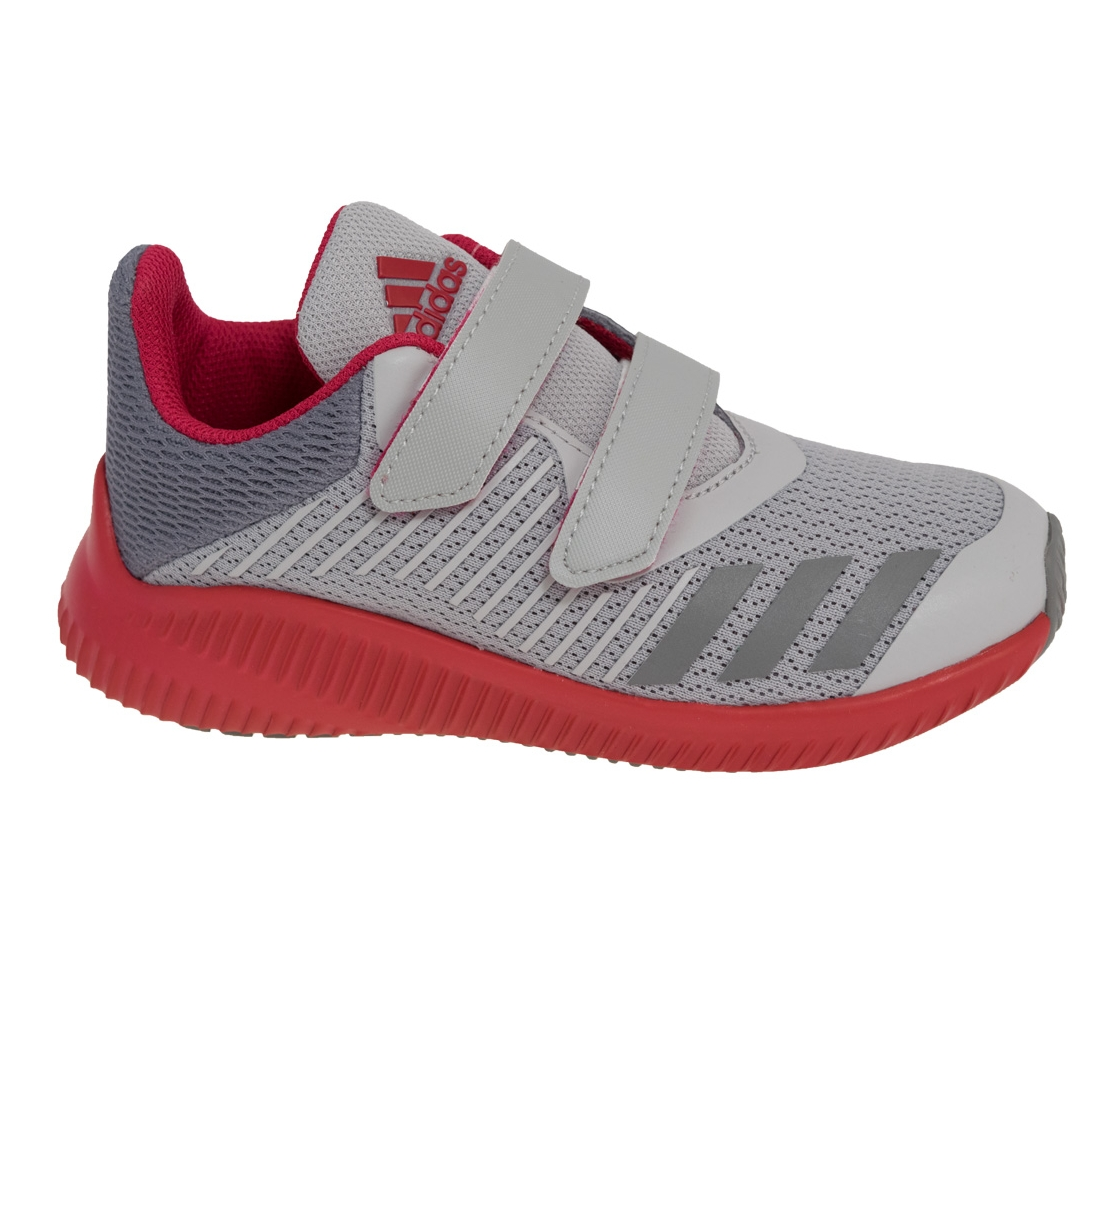 2f5bc67ae71 adidas Παιδικό Παπούτσι Running Ftw Kids Add BY8990 - OHmyTAGS.com